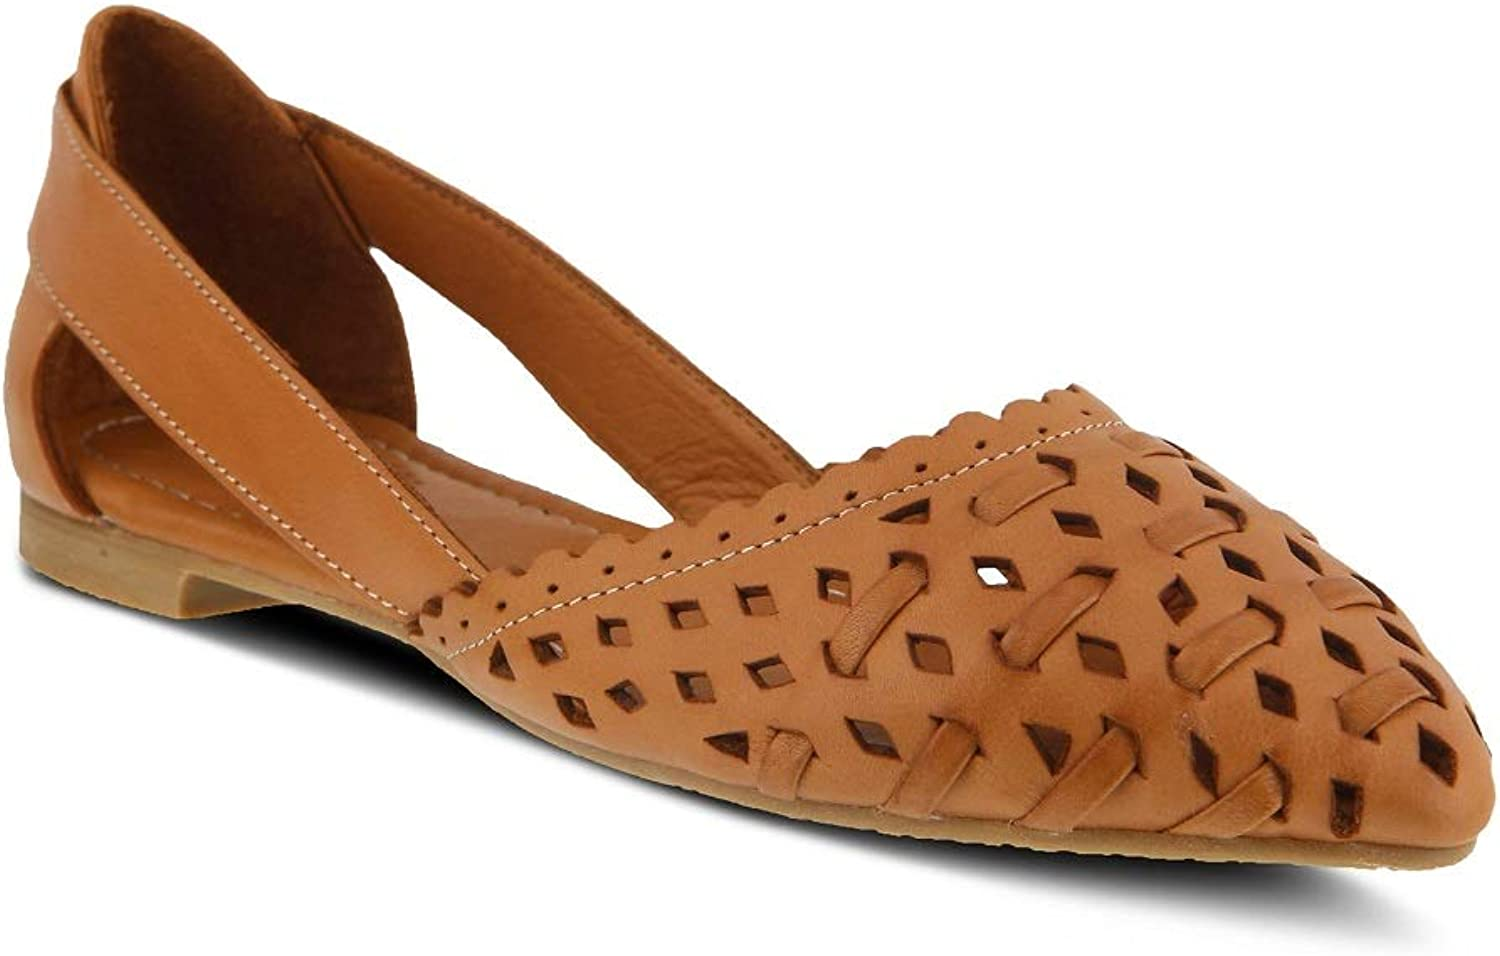 Spring Step Women's Delorse shoes   color Camel   Leather shoes